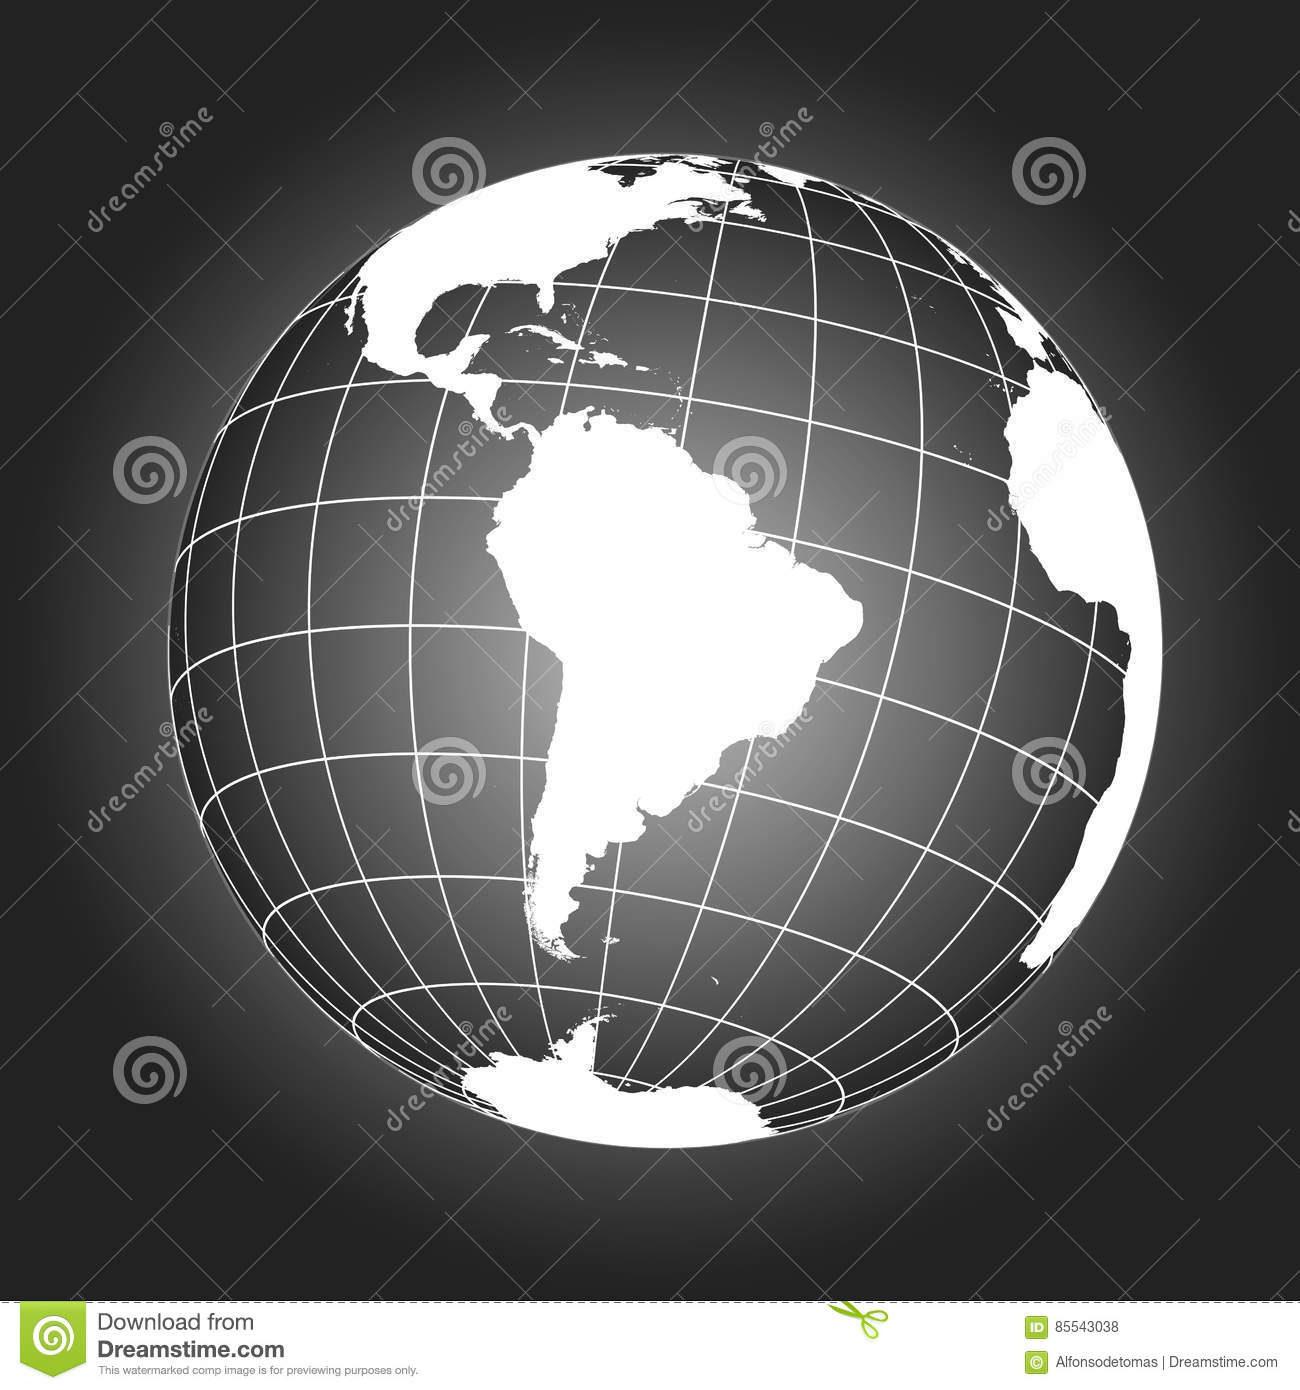 South America Map In Black And White Stock Vector - Illustration of ...